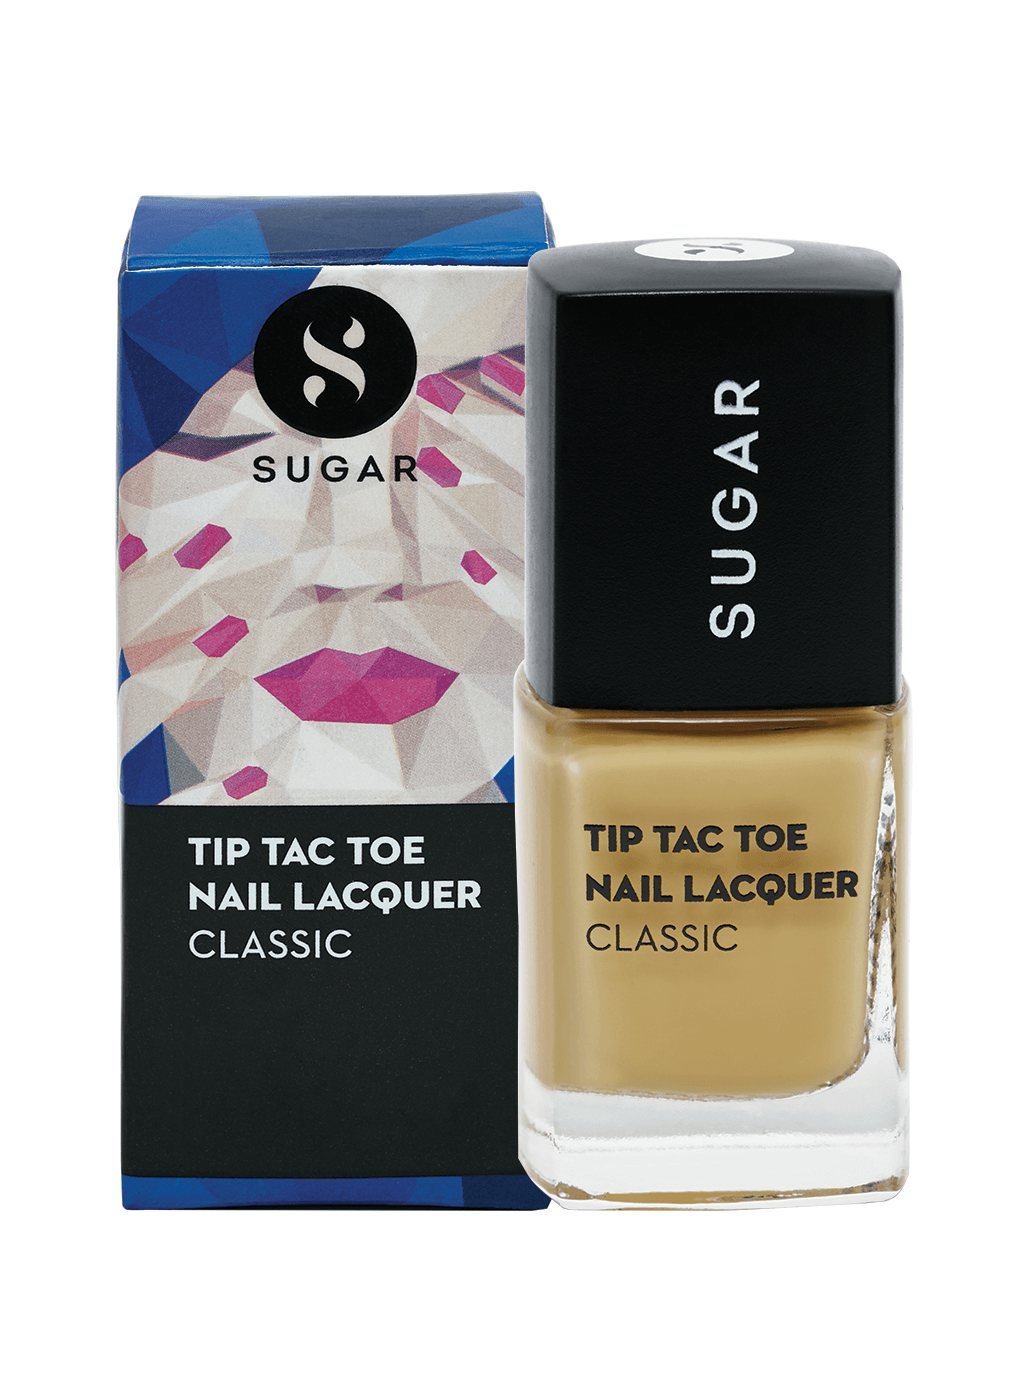 Tip Tac Toe Nail Lacquer - 066 Sunny Side Up (Pastel Yellow)